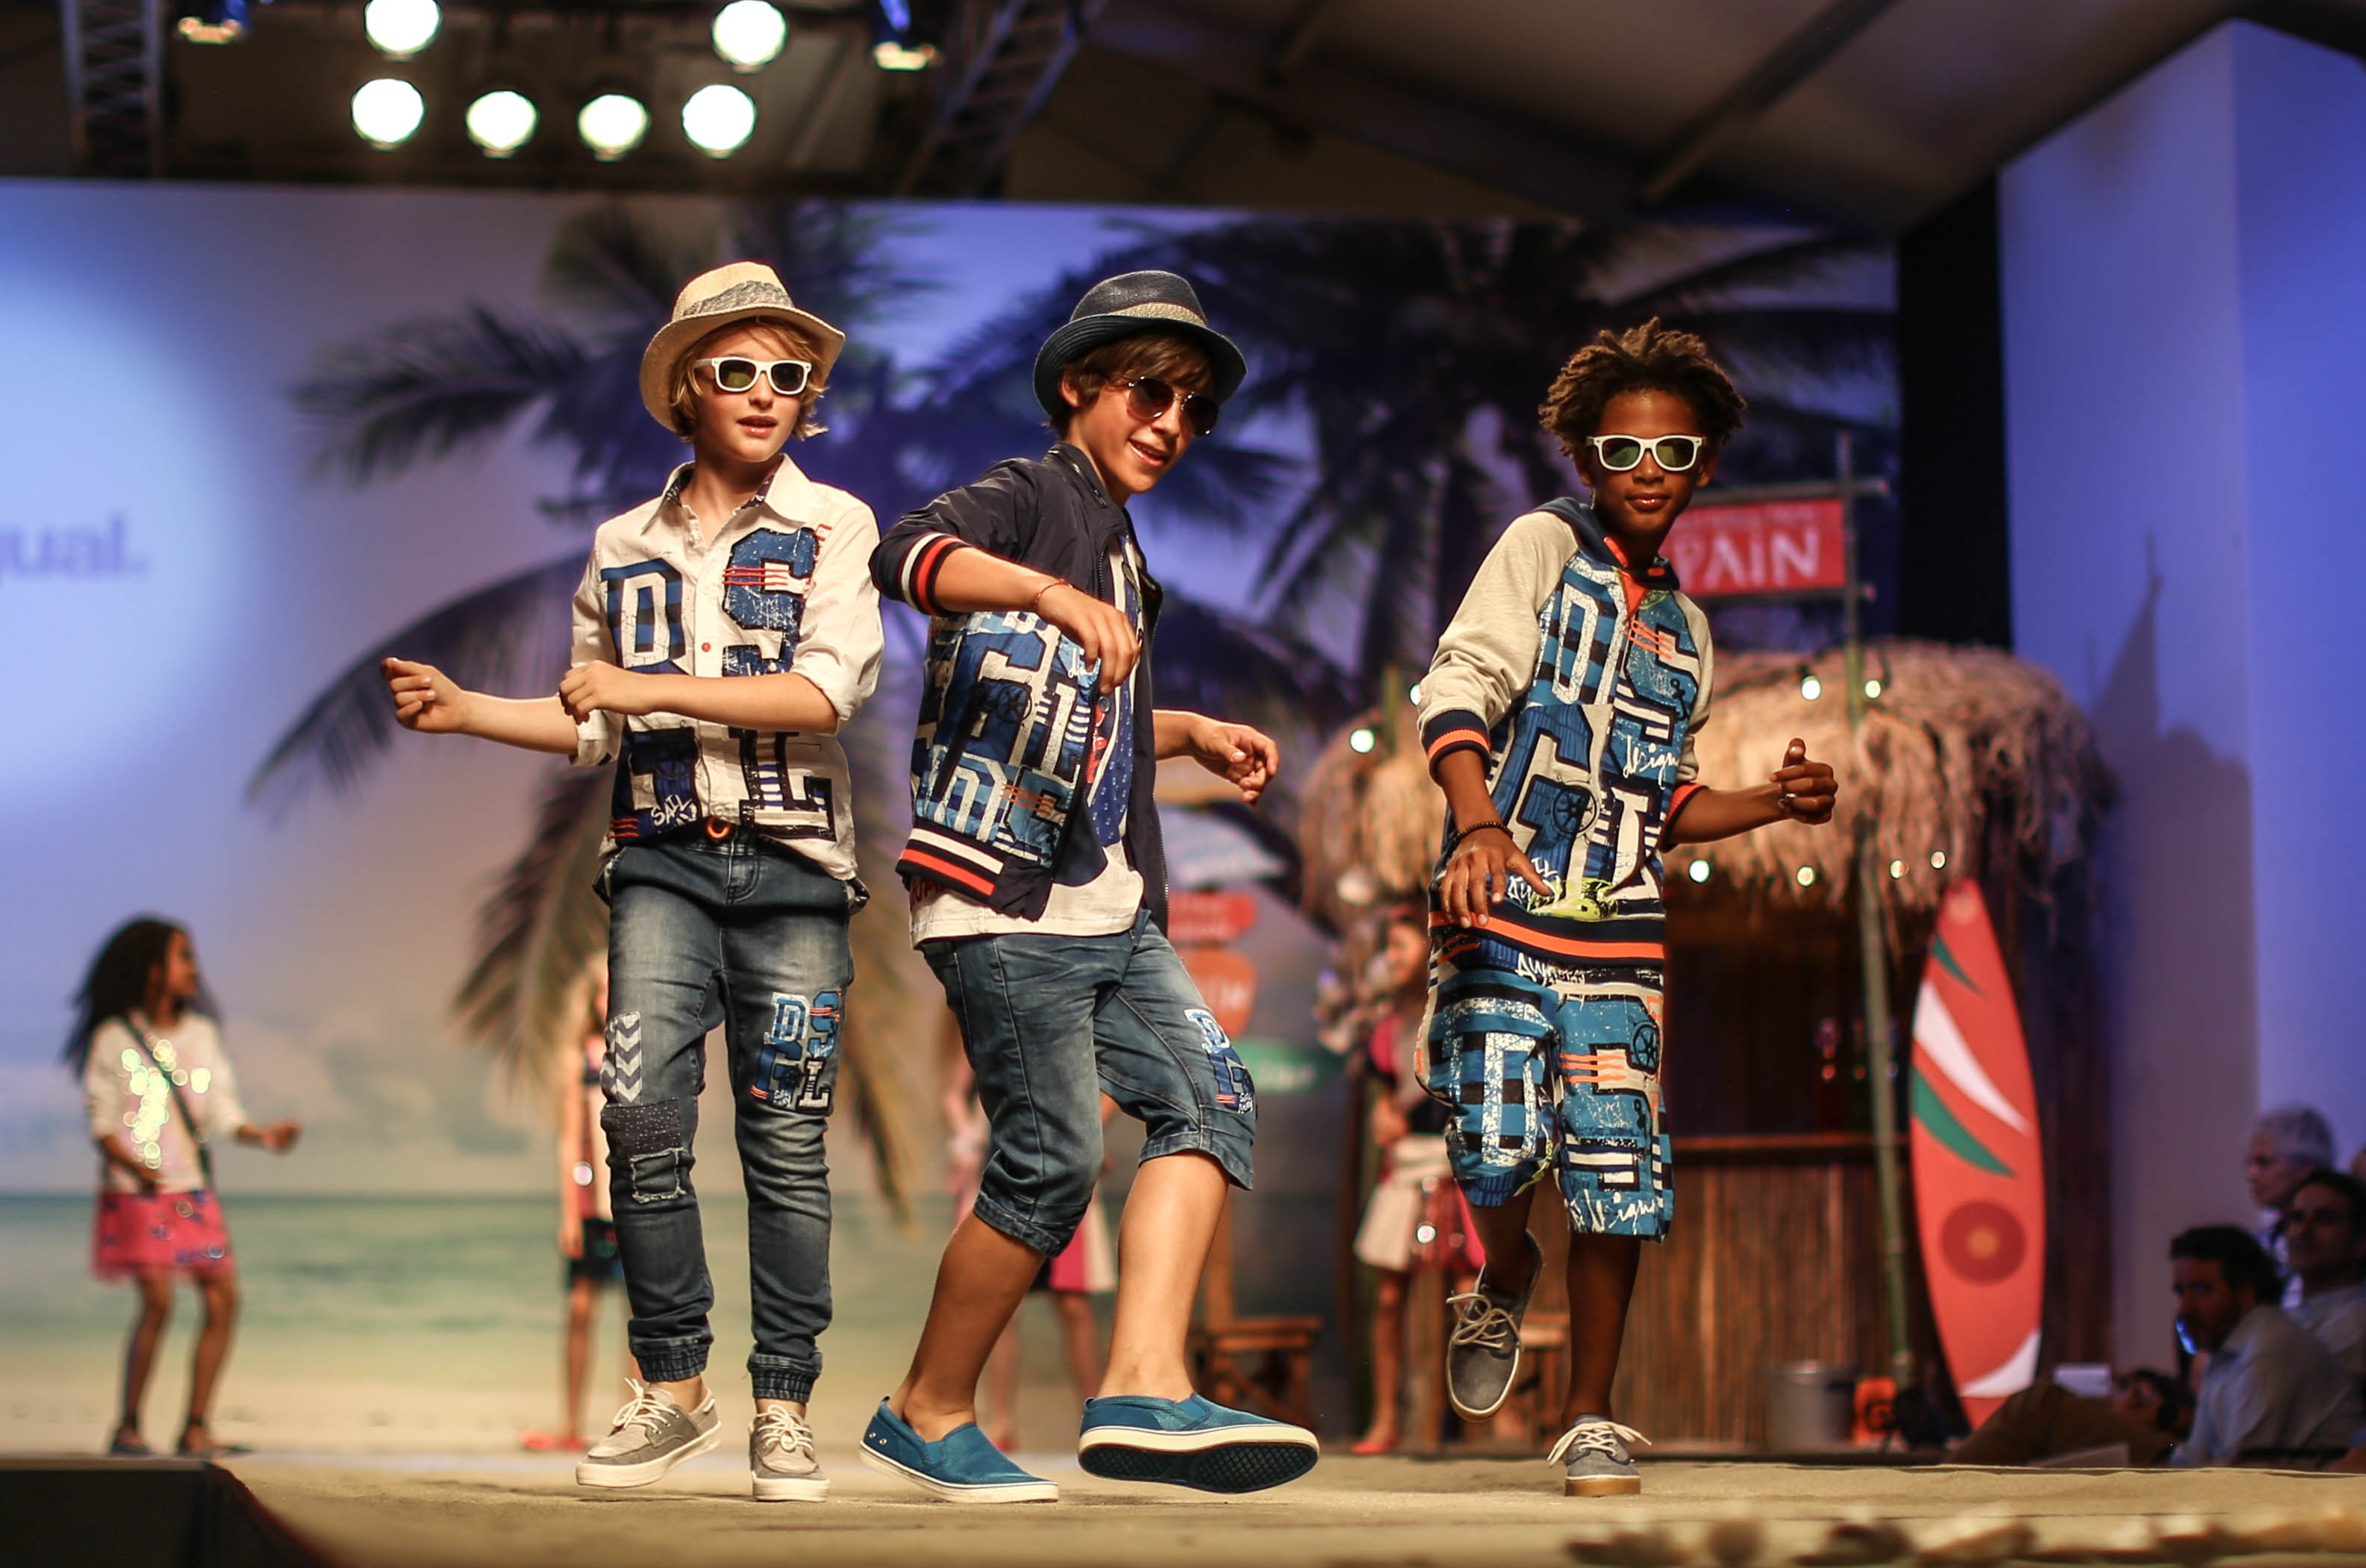 Children's fashion from Spain during Pitti Bimbo 83